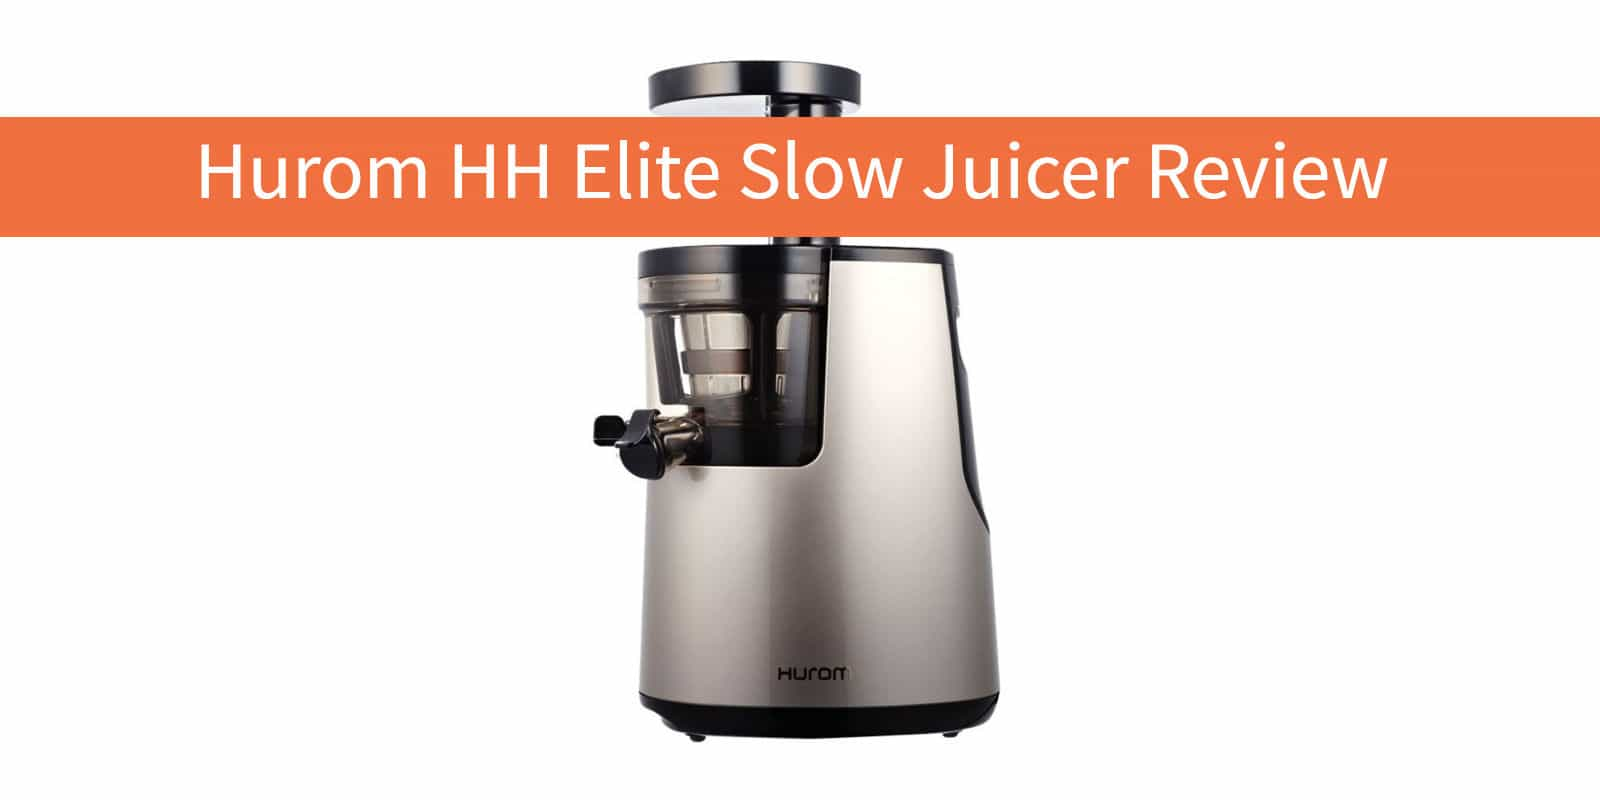 Best Slow Juicers 2018 : Hurom HH Elite Slow Juicer Review (2018) vegByte